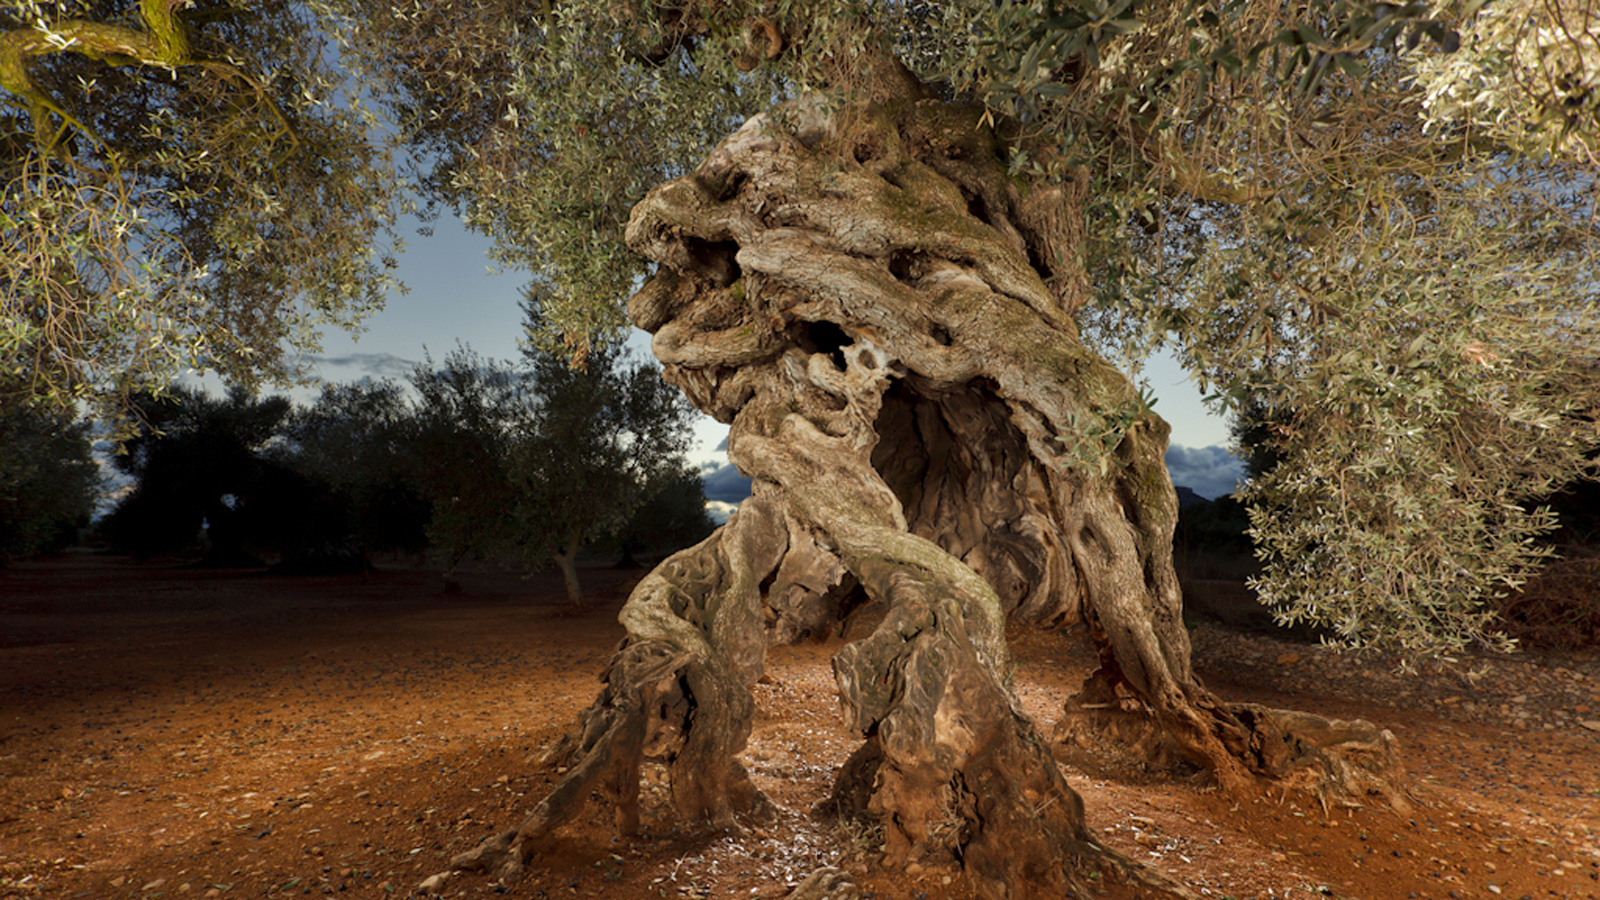 Spain S Ancient Olive Trees New Taste For Their Olive Oil Cnn